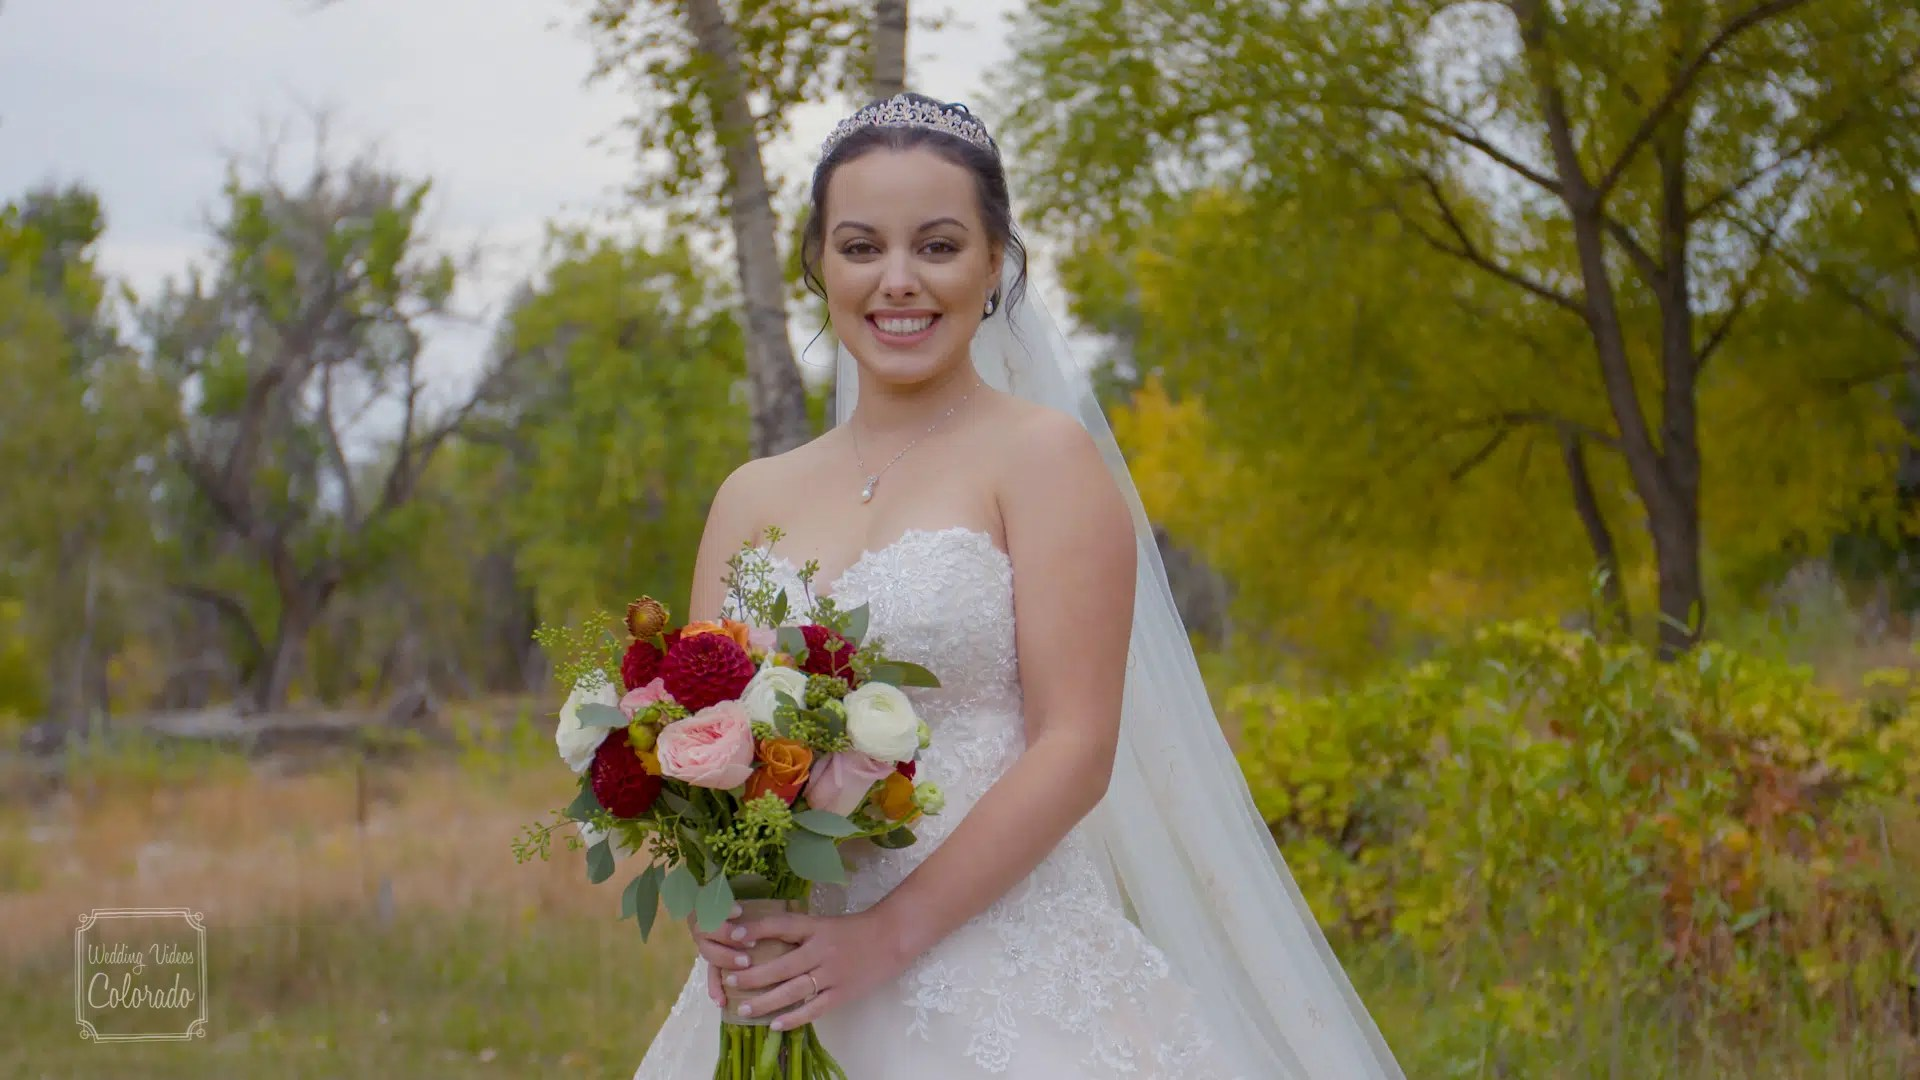 Daismarie Michael wedding sweetheart winery loveland